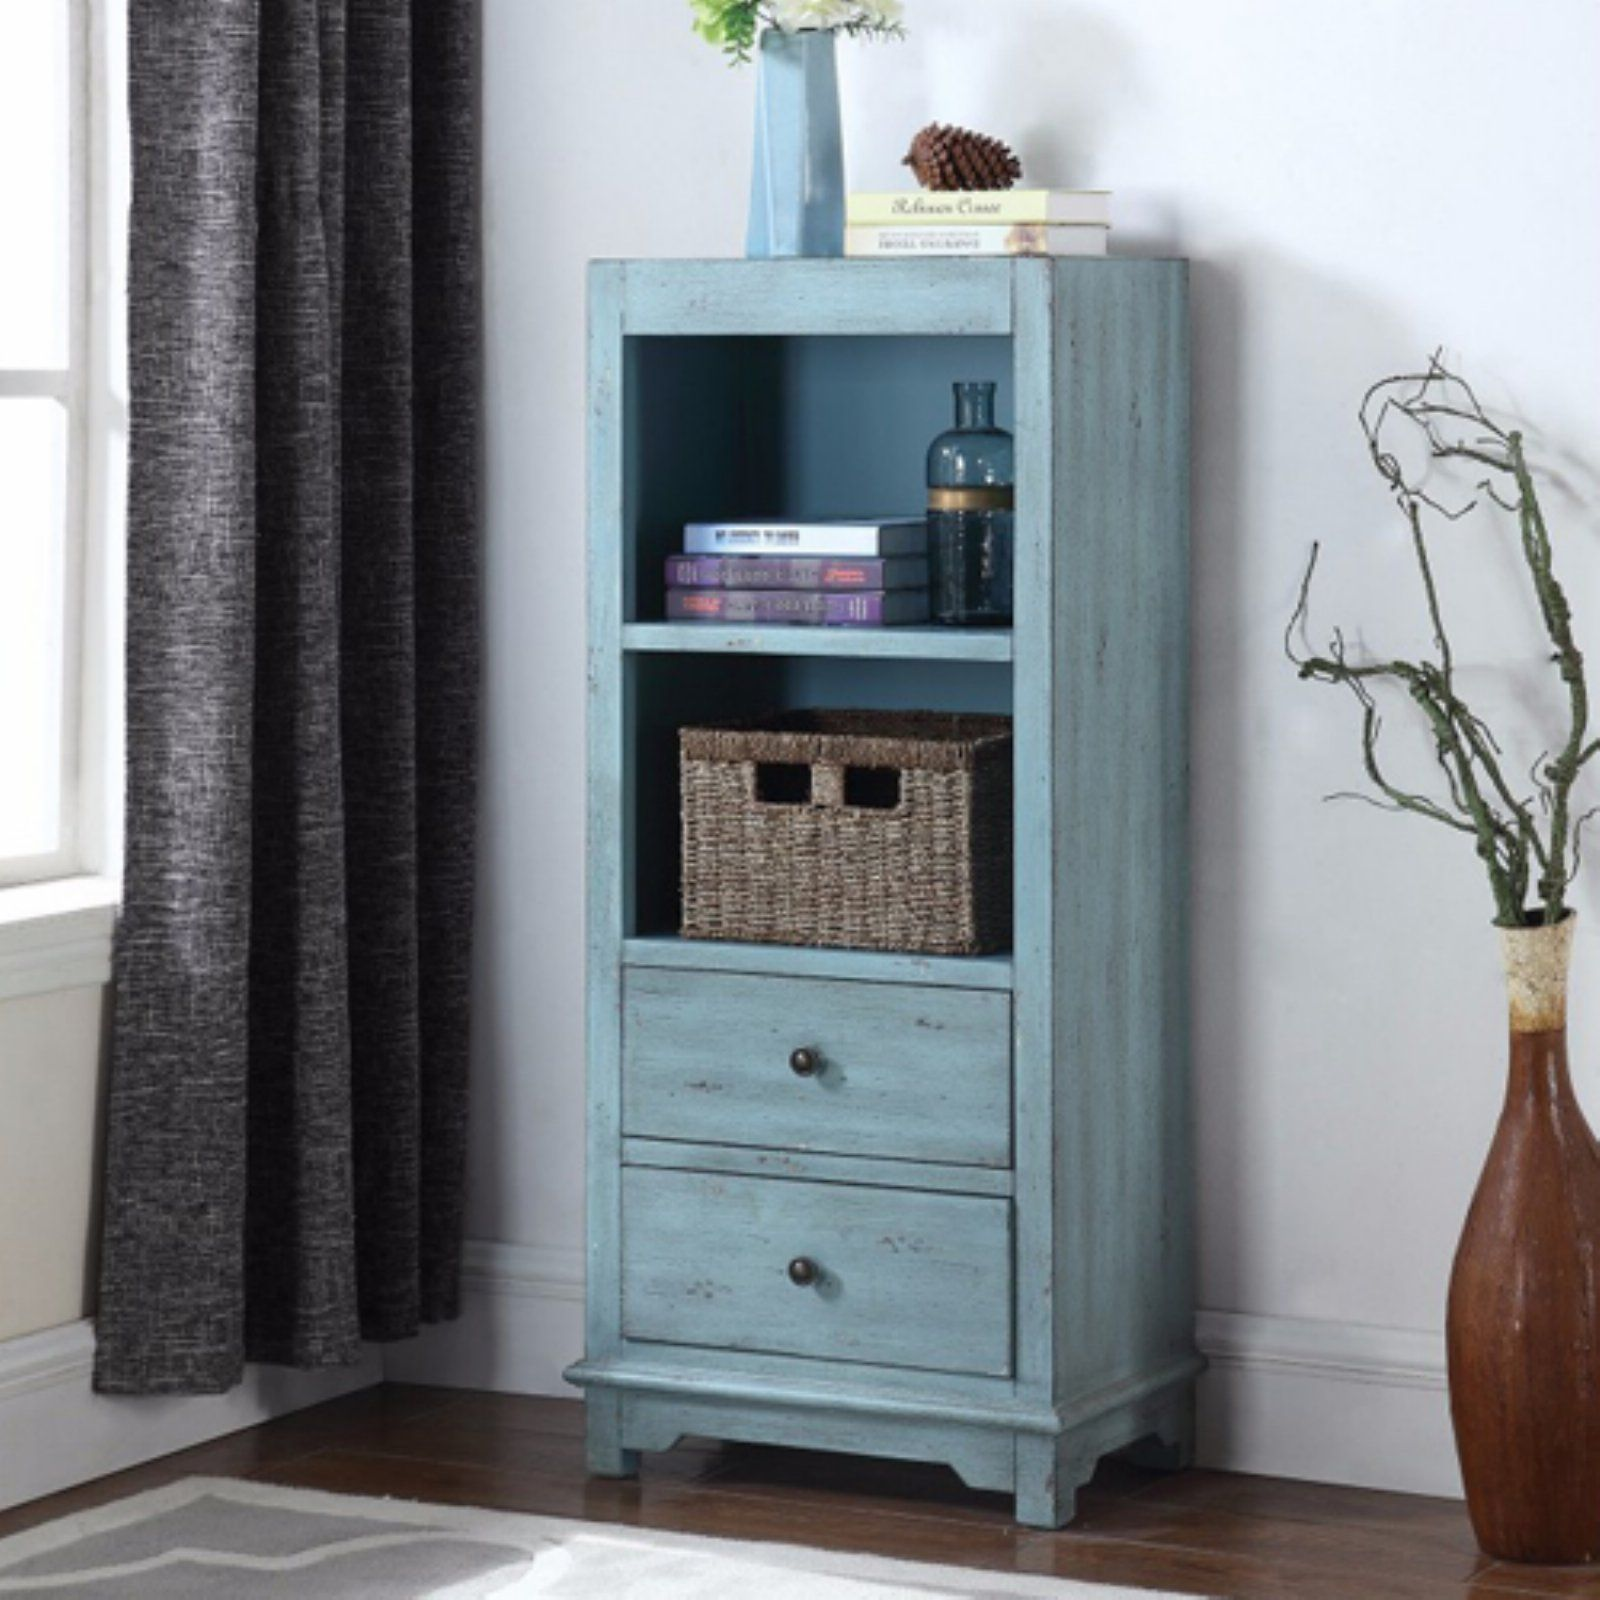 21+ Living room cabinets tall ideas in 2021